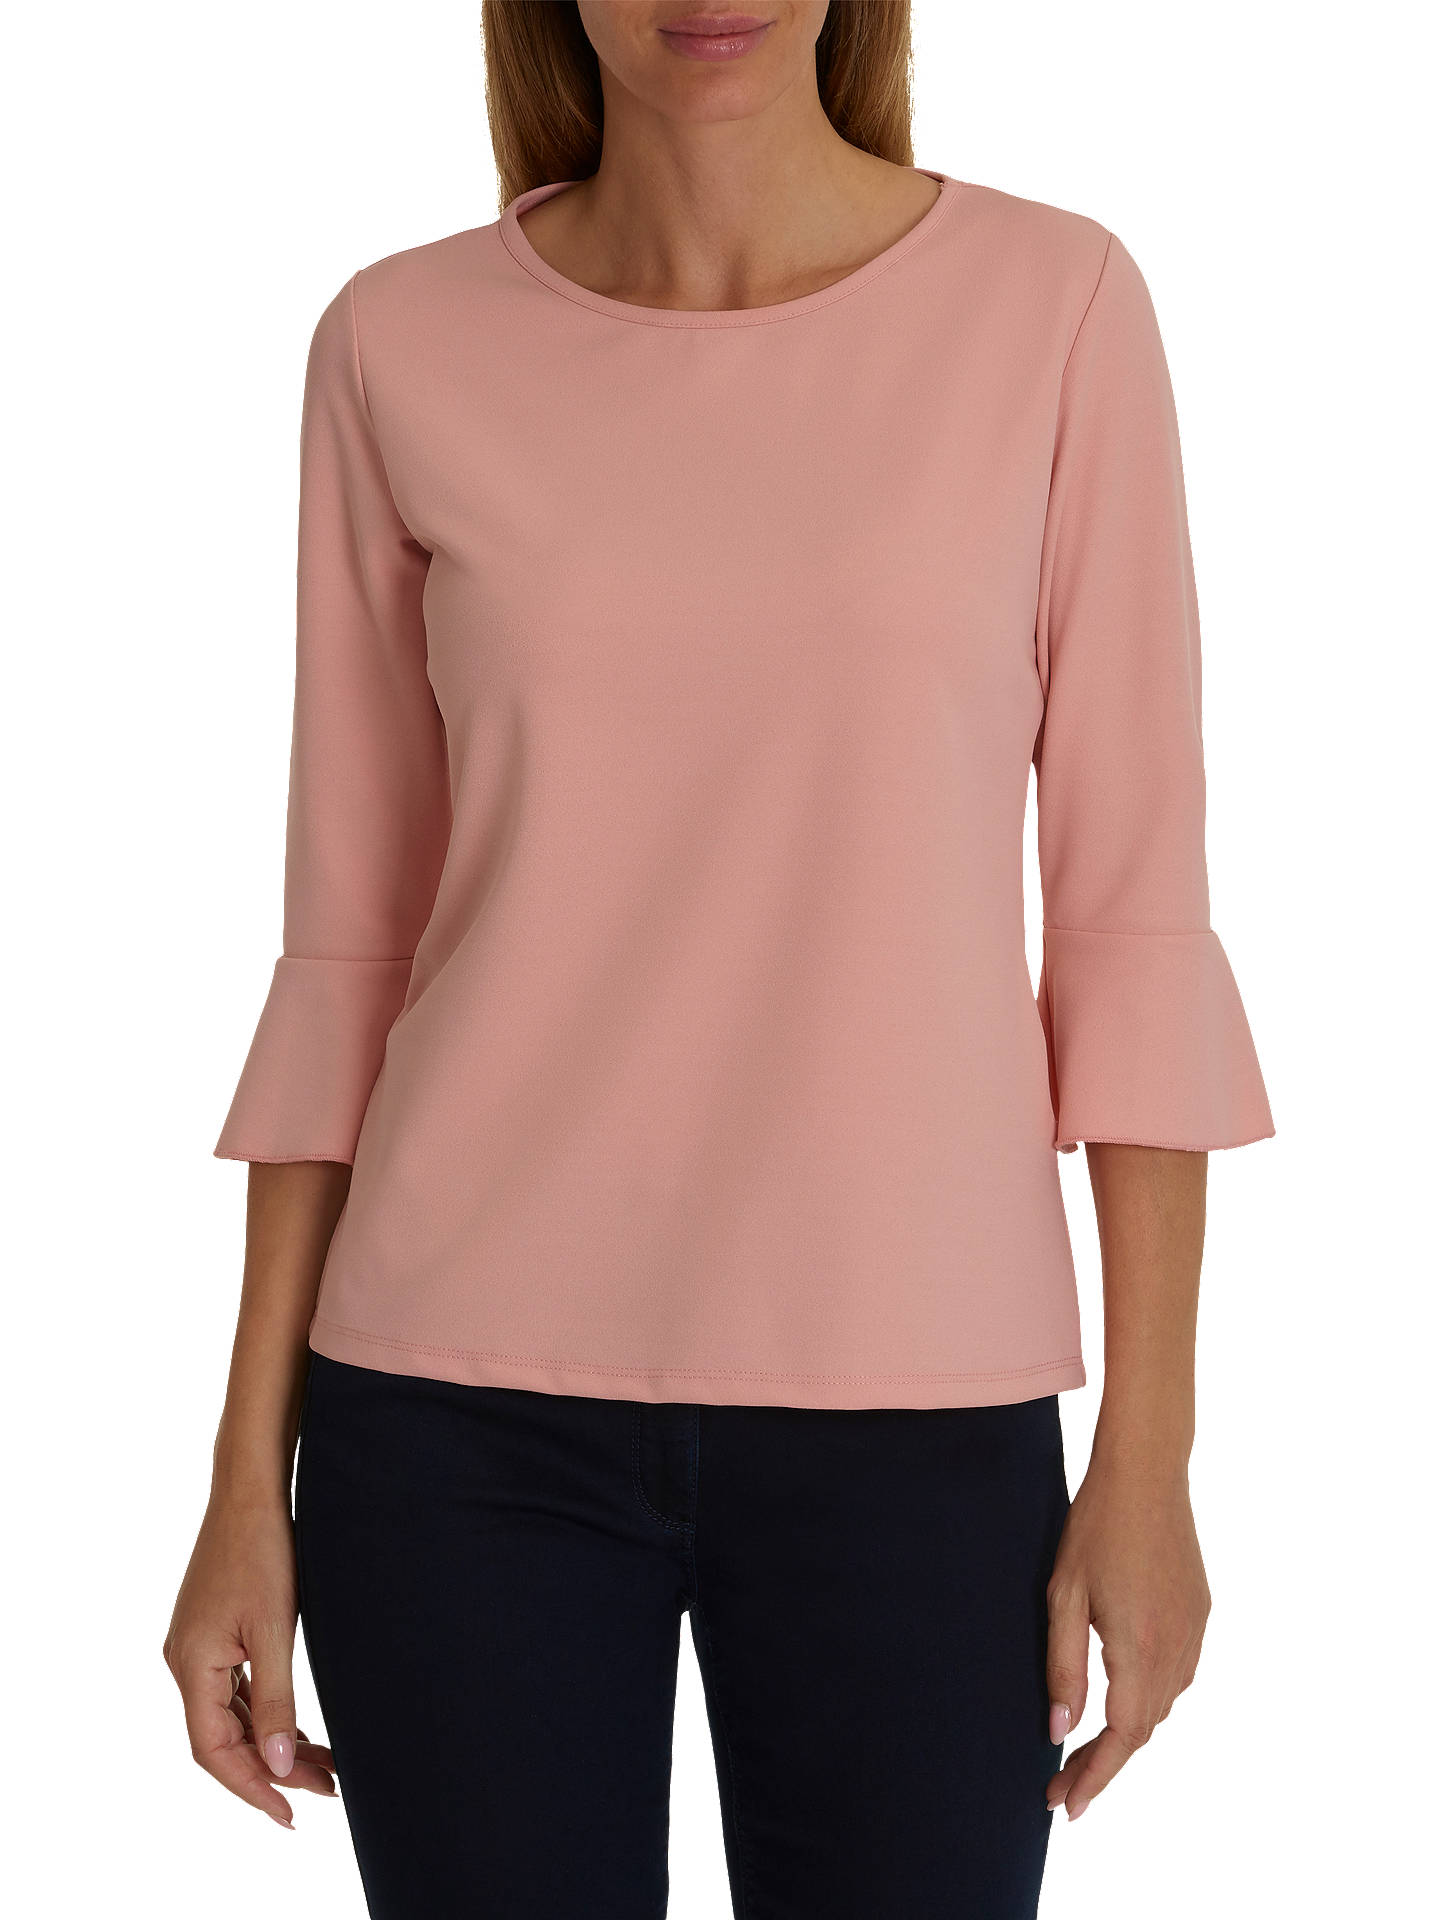 BuyBetty Barclay Jersey Top, Powder Rose, 10 Online at johnlewis.com ... 526167b4bd